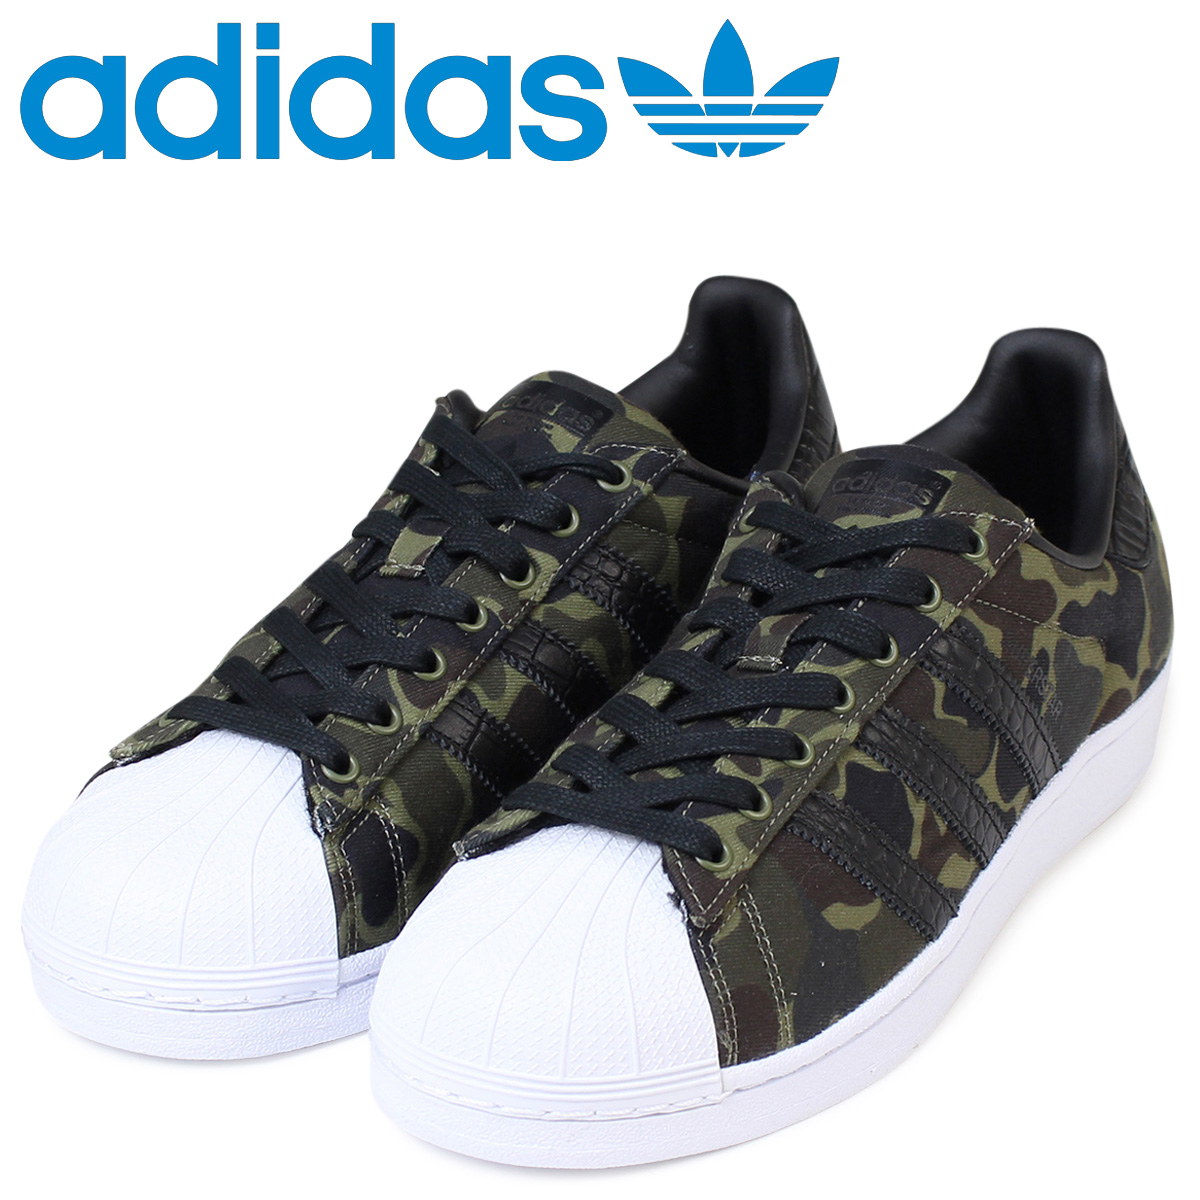 adidas shoes black stripes, adidas men's superstar sneakers